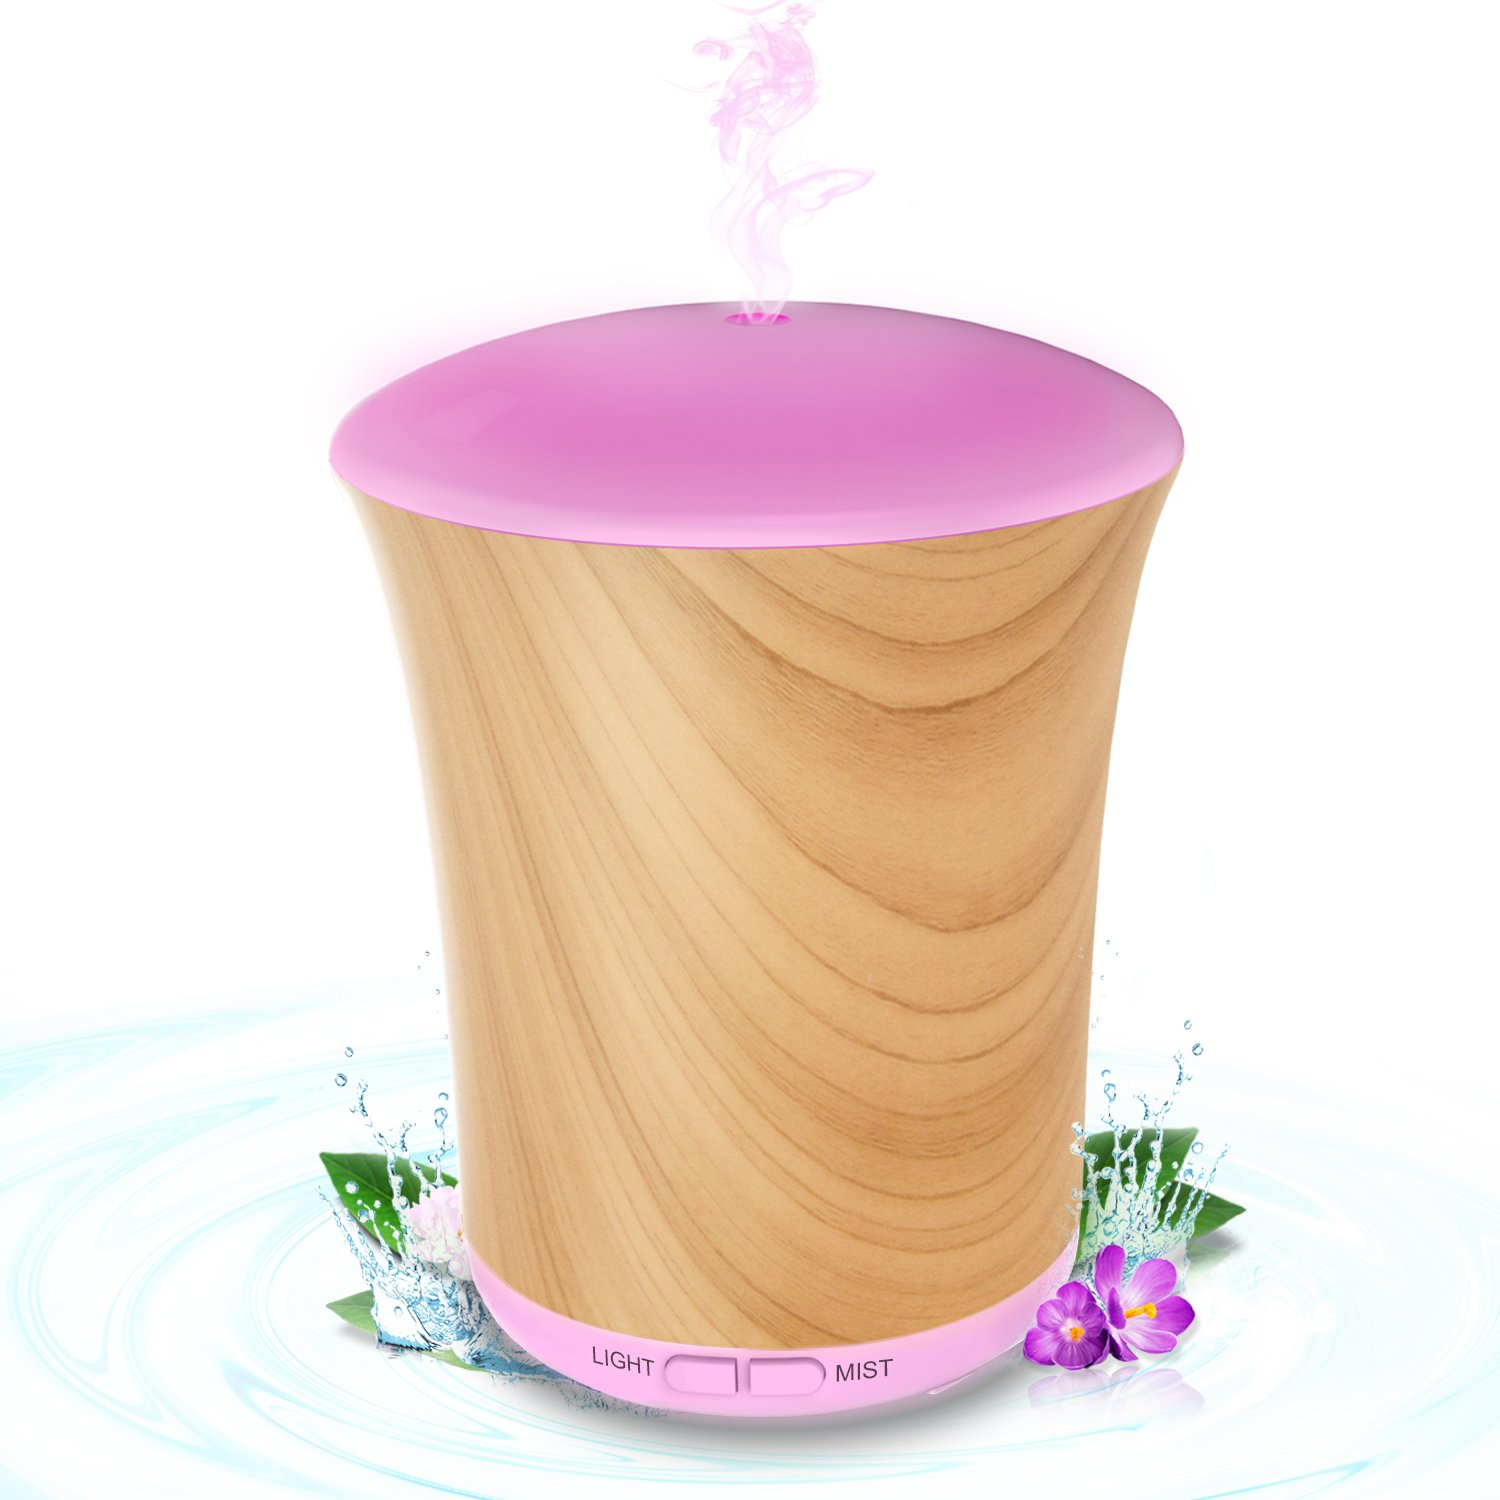 Diffusers for Essential Oils , 200ml Aromatherapy Essential Oil Diffuser Cool Mist Humidifier With 8 Colors LED Lights, Waterless Auto Shut-off And 4 Timer Settings Romantic Gifts Neloodony-Wood Grain